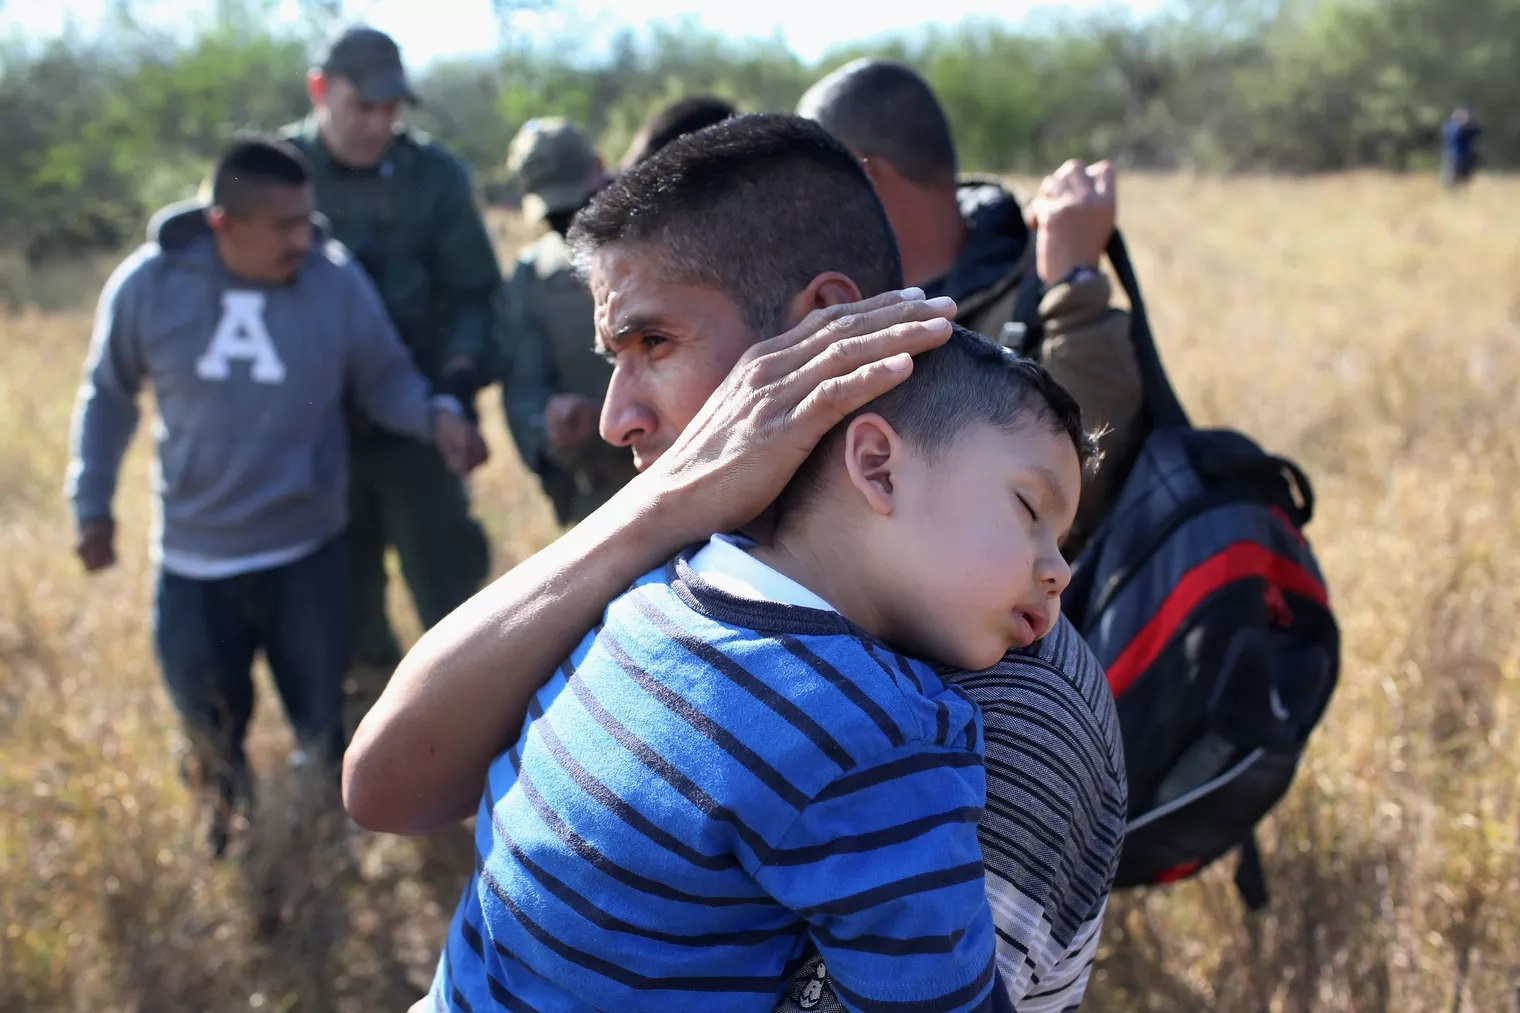 A migrant father hugging his son near the US-Mexico border